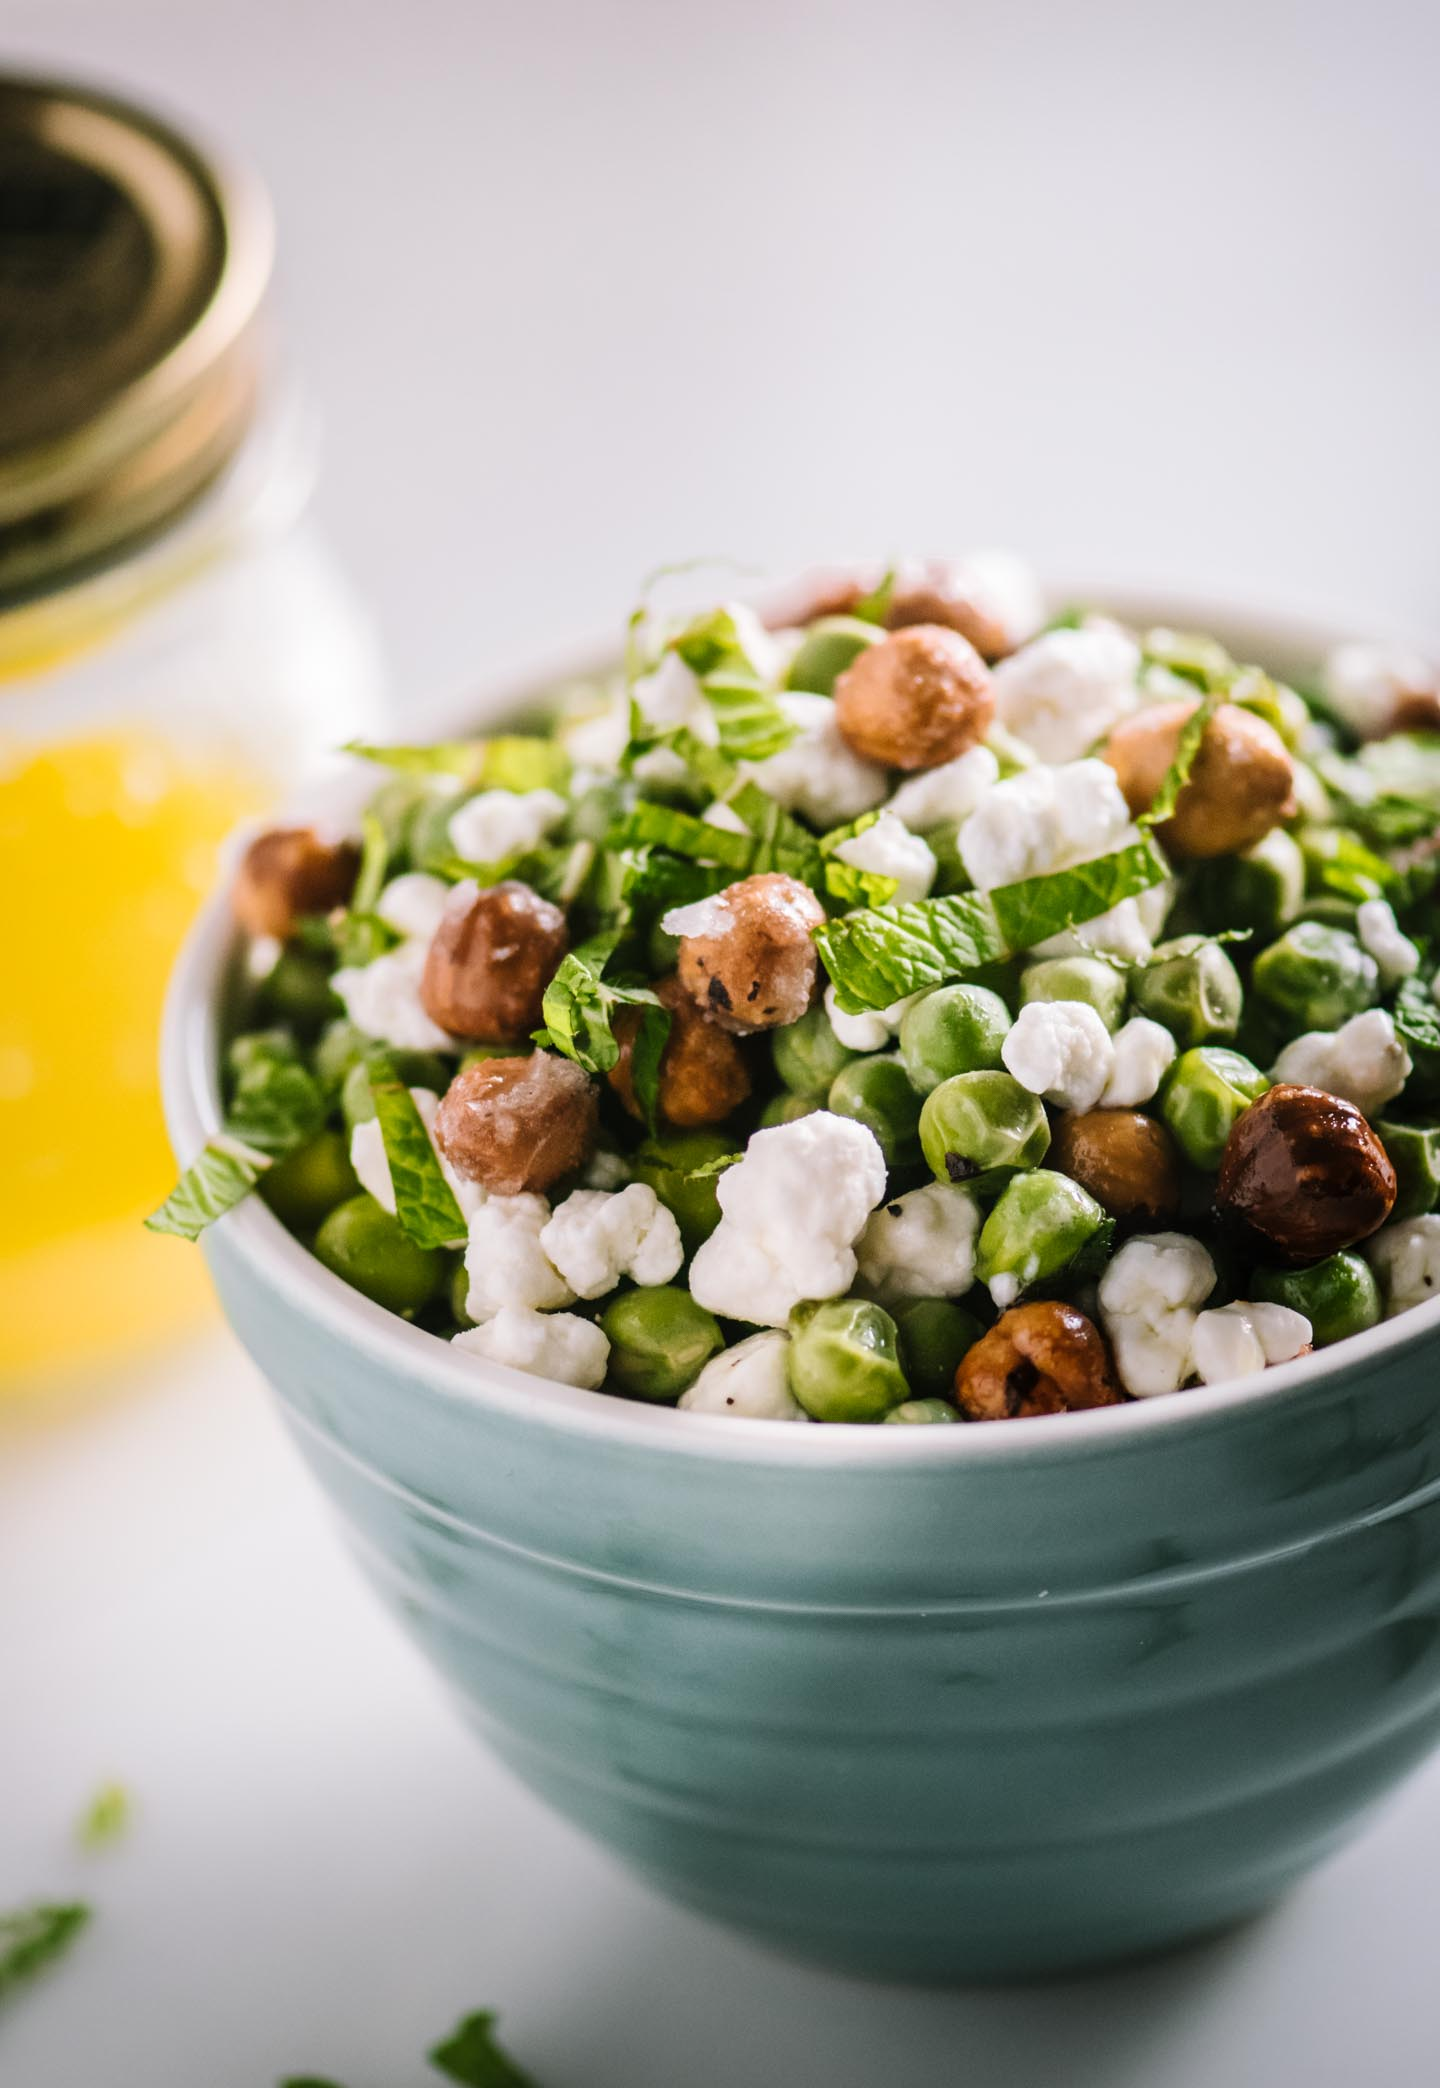 Fresh English Pea salad with candied hazelnuts and goat cheese in a small teal bowl